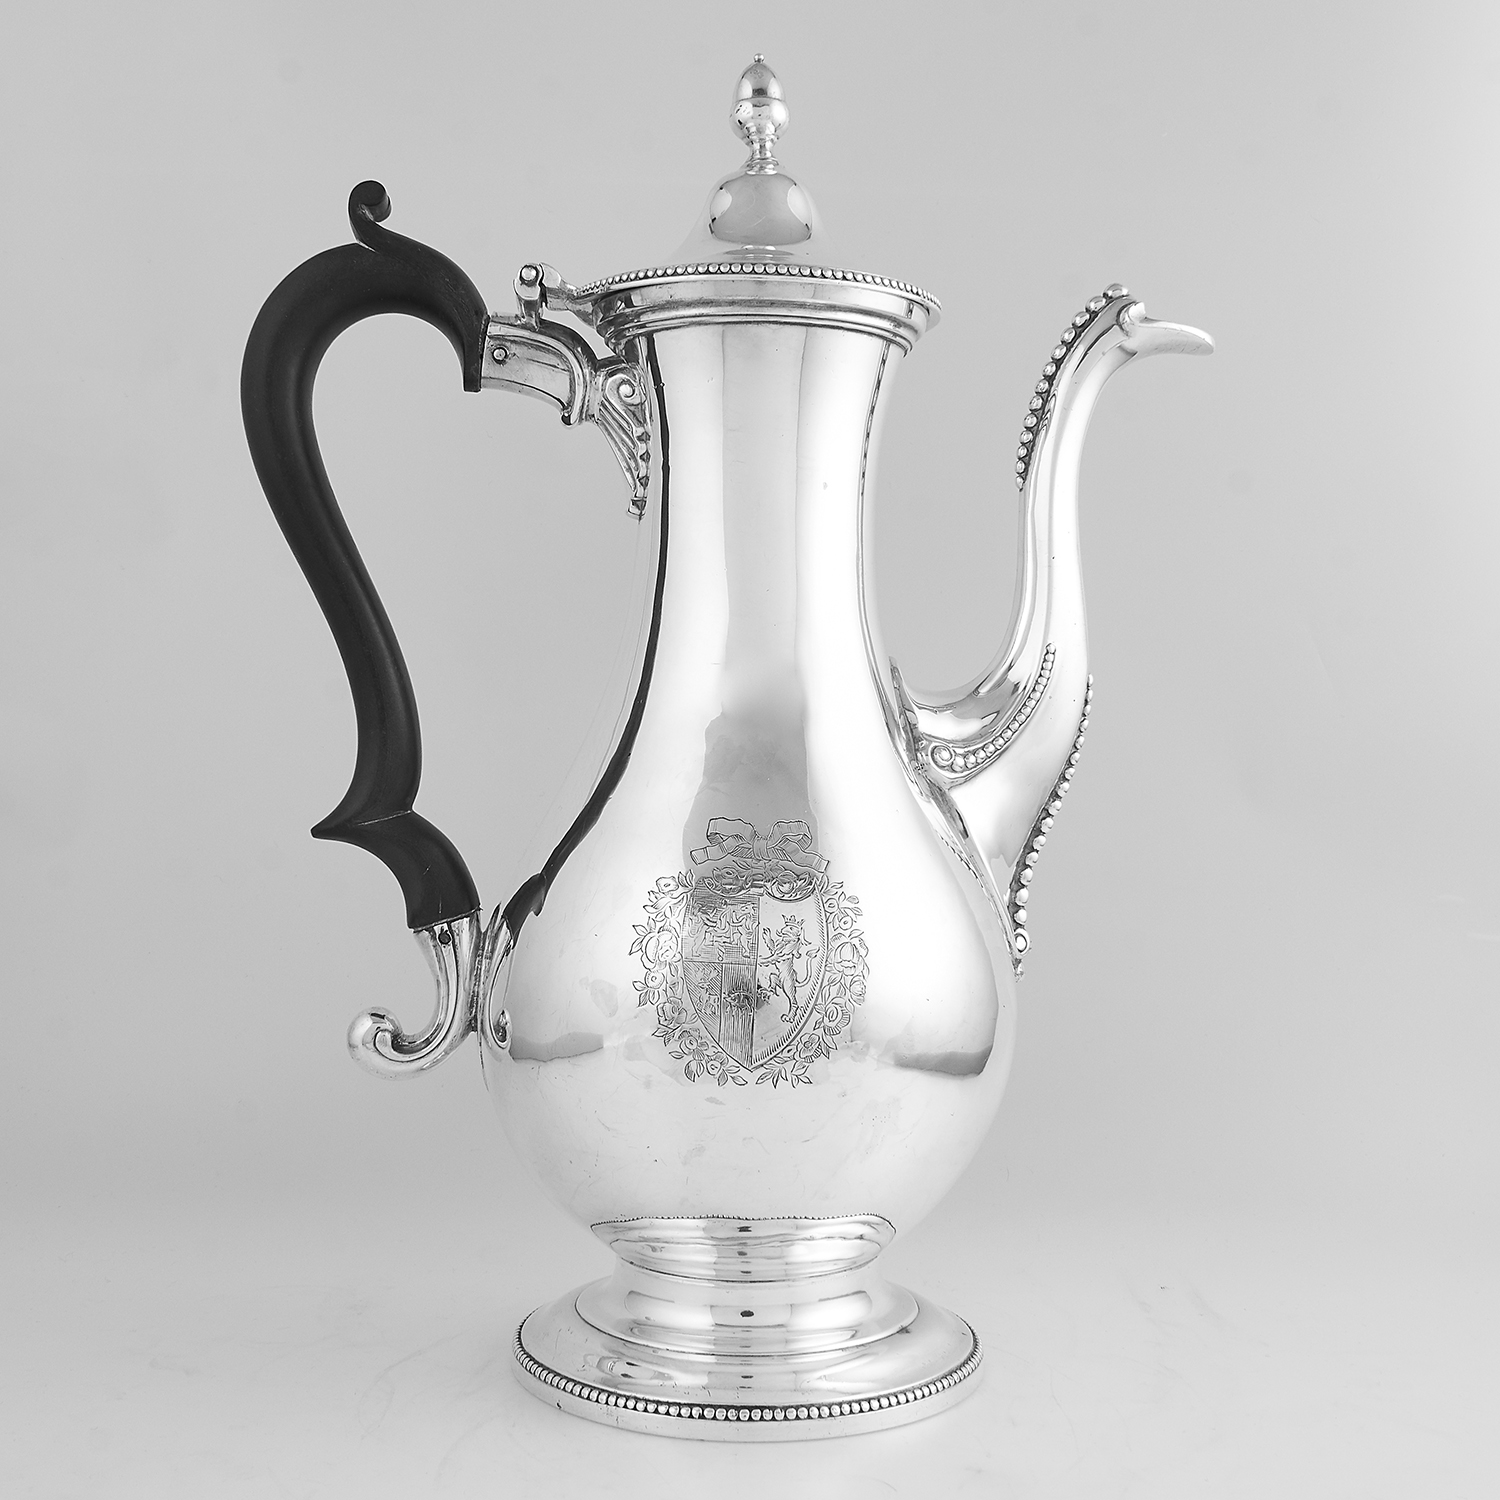 ANTIQUE GEORGE III STERLING SILVER COFFEE POT, HESTER BATEMAN 1778 the baluster body on a